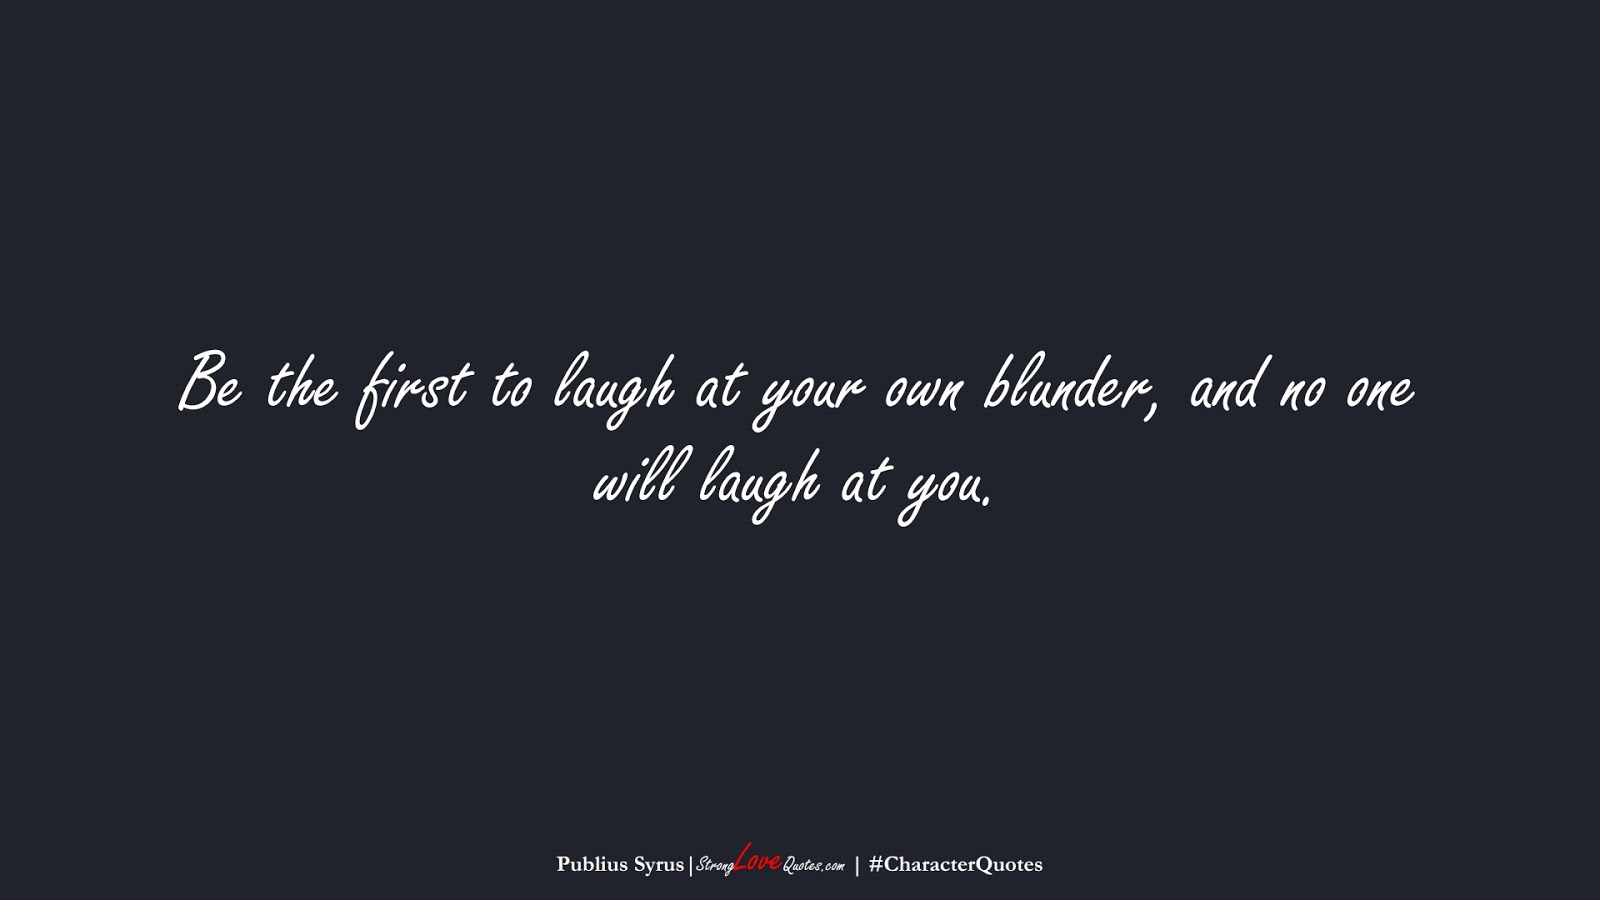 Be the first to laugh at your own blunder, and no one will laugh at you. (Publius Syrus);  #CharacterQuotes